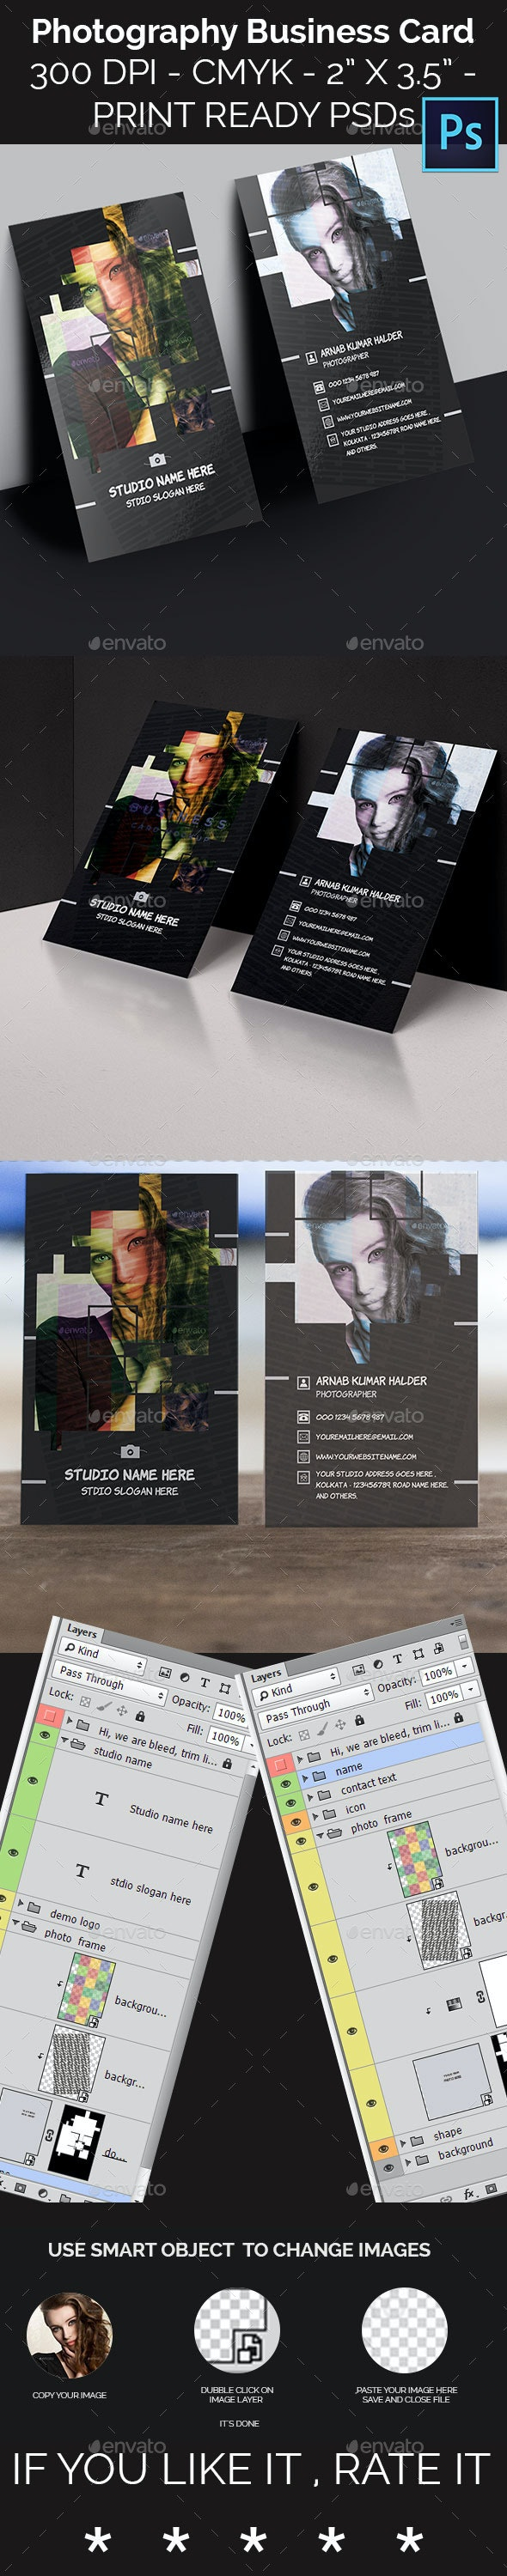 Photography Business Card Templates - Creative Business Cards